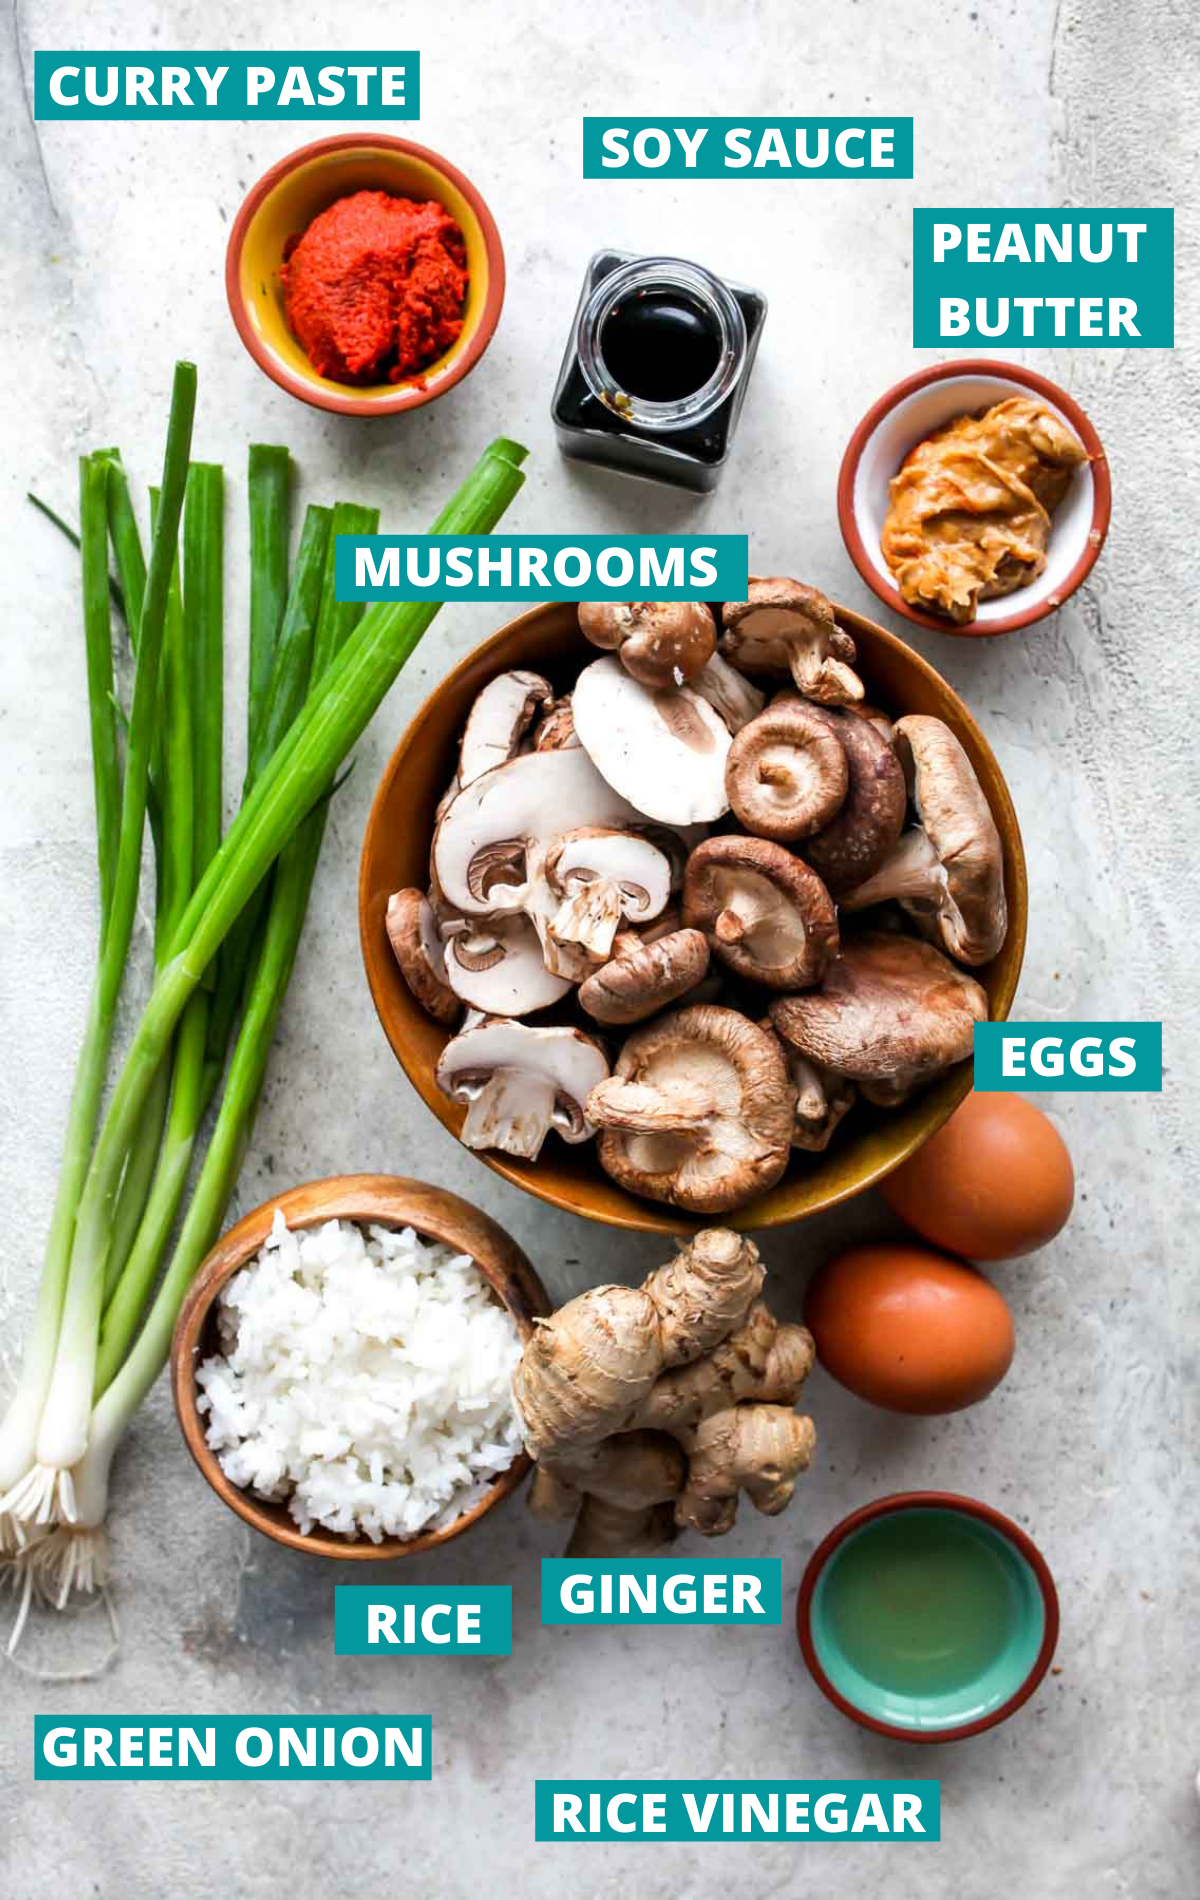 Mushroom fried rice ingredients in separate bowls with blue labels